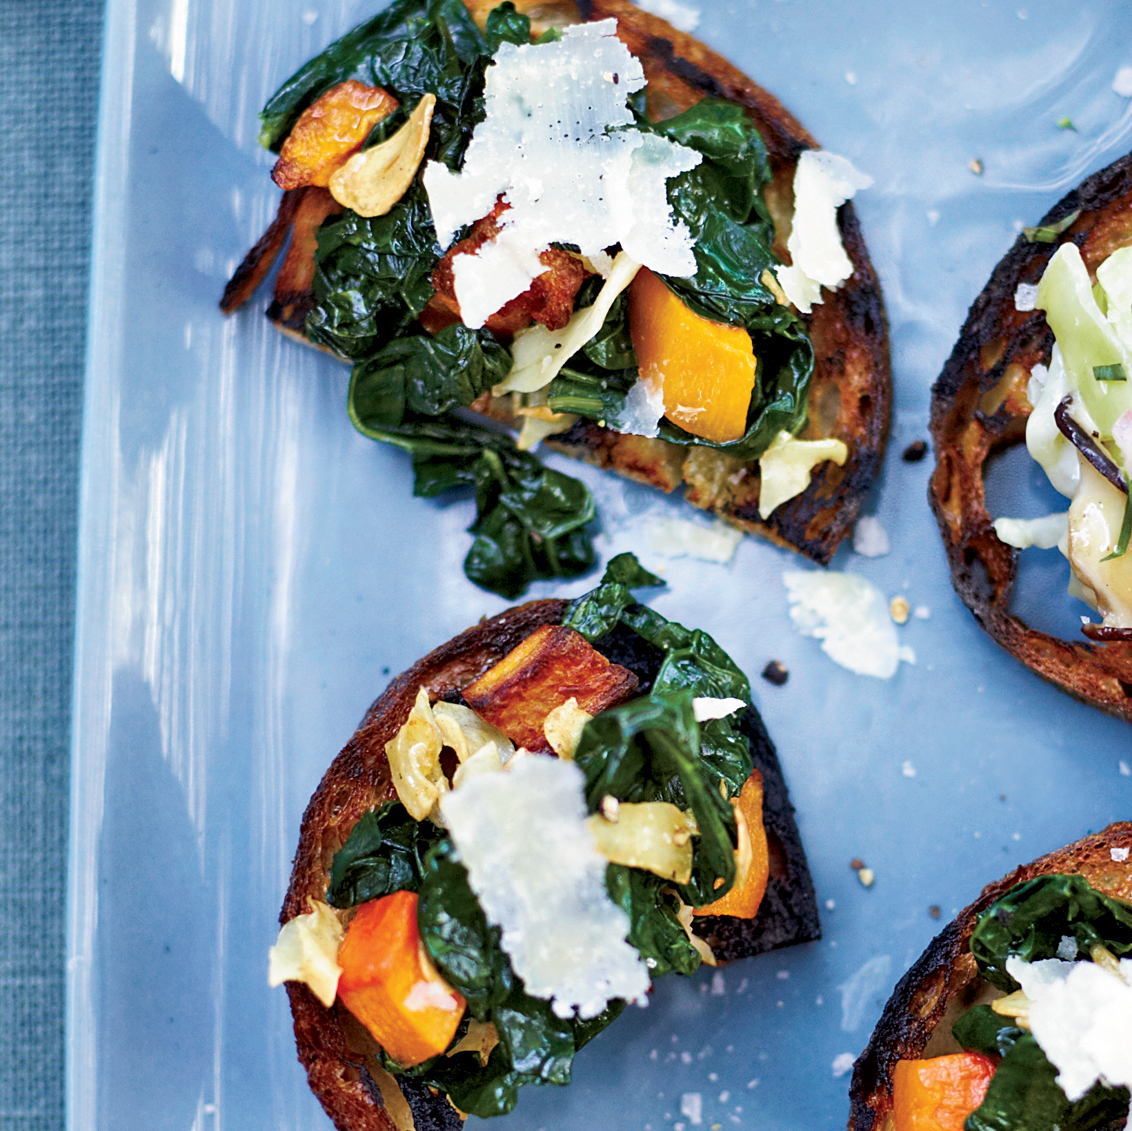 Squash-and-Kale Toasts Recipe - Steven Satterfield | Food & Wine